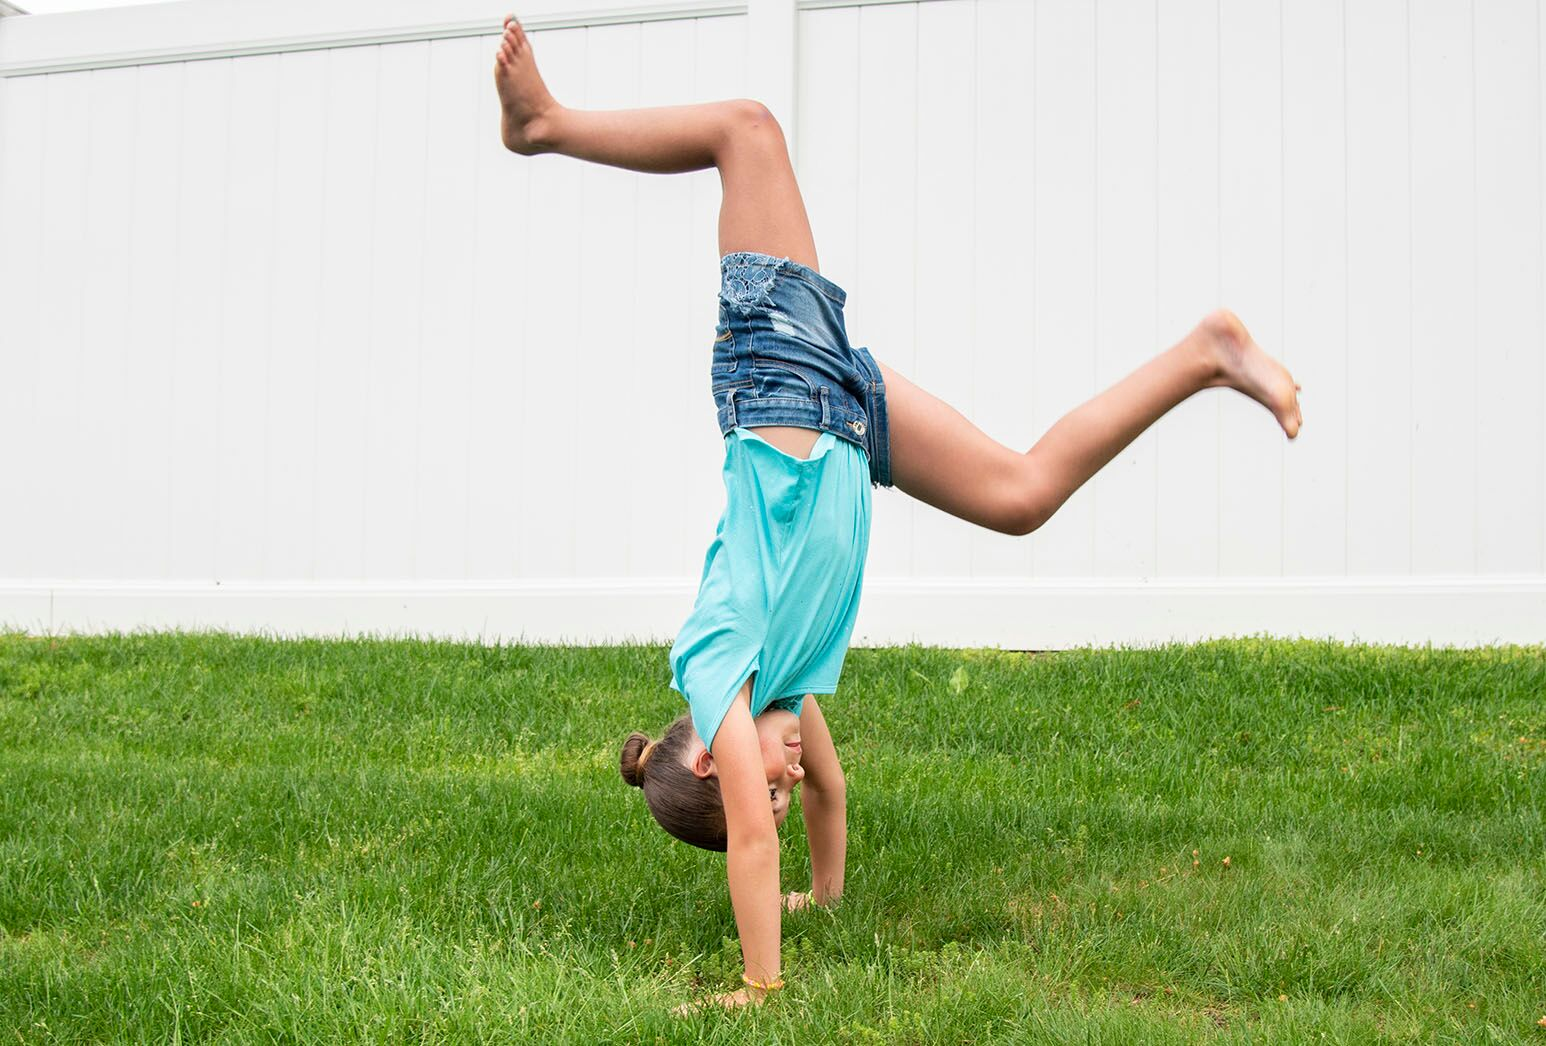 Young girl on the grass mid-cartwheel in a blue top and blue jean shorts in front of a white fence.